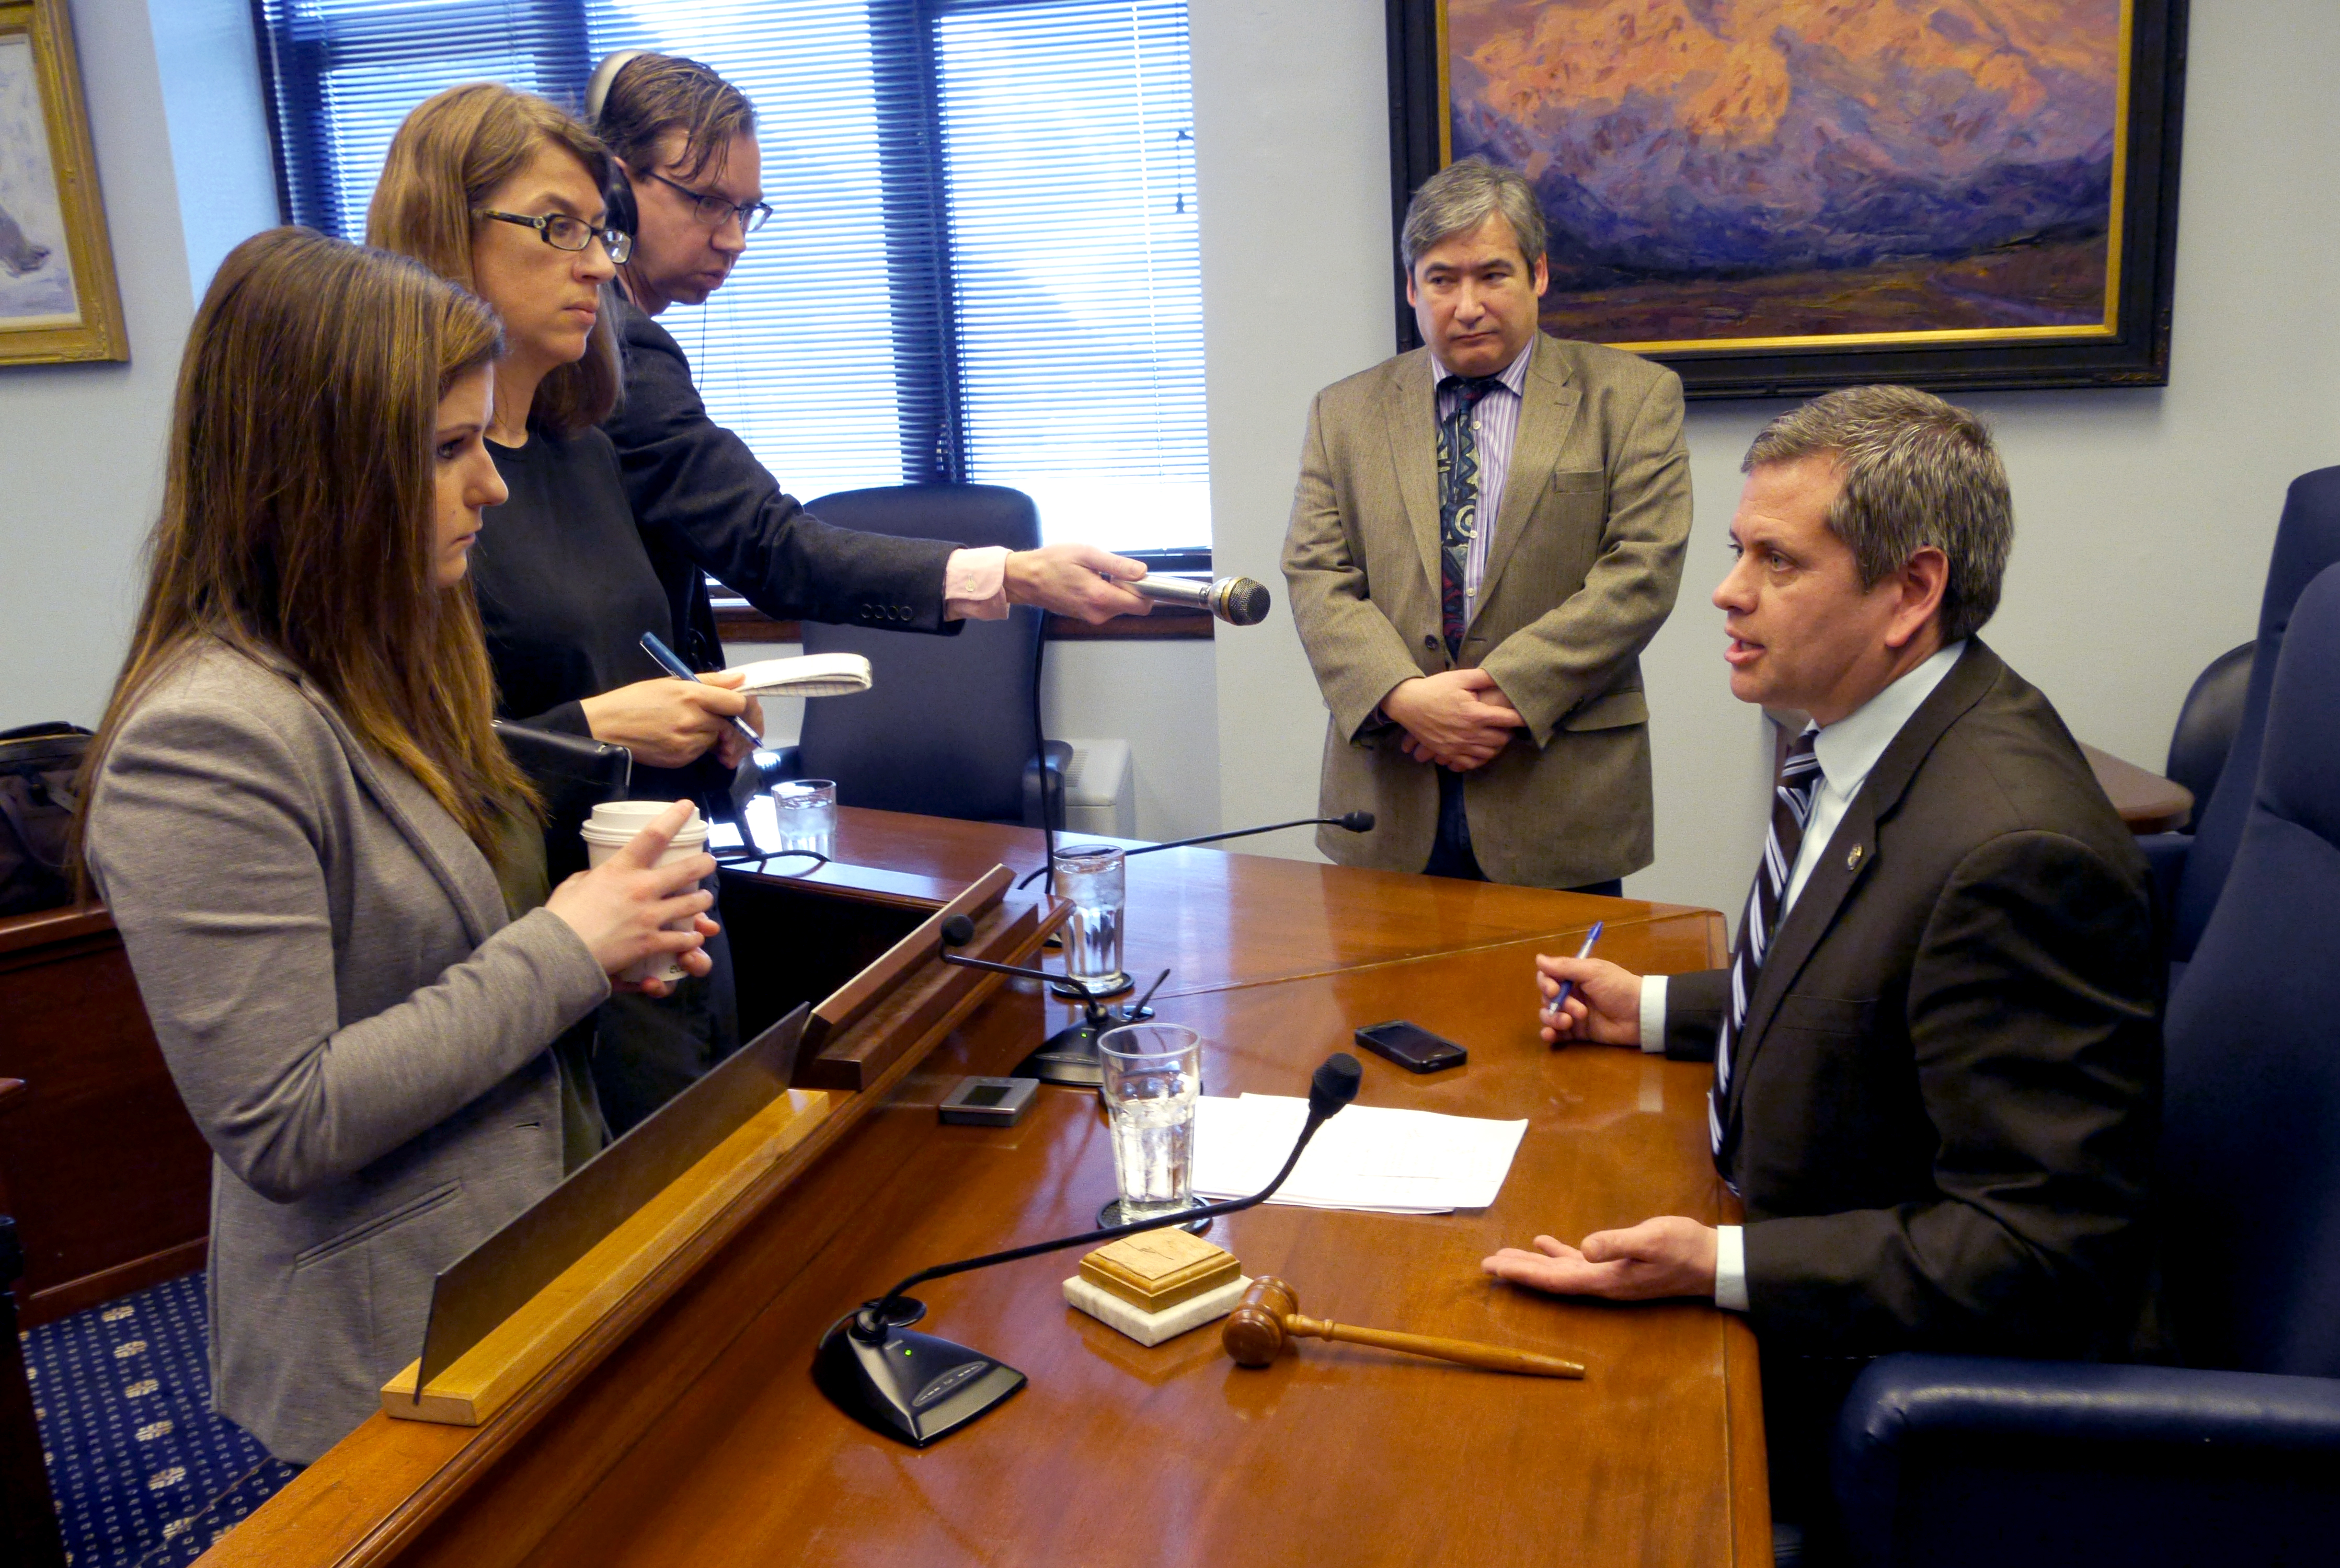 Rep. Chris Tuck, D-Anchorage, takes questions from reporters April 19, 2016. Rep. Sam Kito III, D-Juneau, stands to his right. Reporters, front to back, are Liz Raines of KTVA, Becky Bohrer of the Associated Press and Andrew Kitchenman of Alaska Public Media and KTOO. (Photo by Skip Gray/360 North)